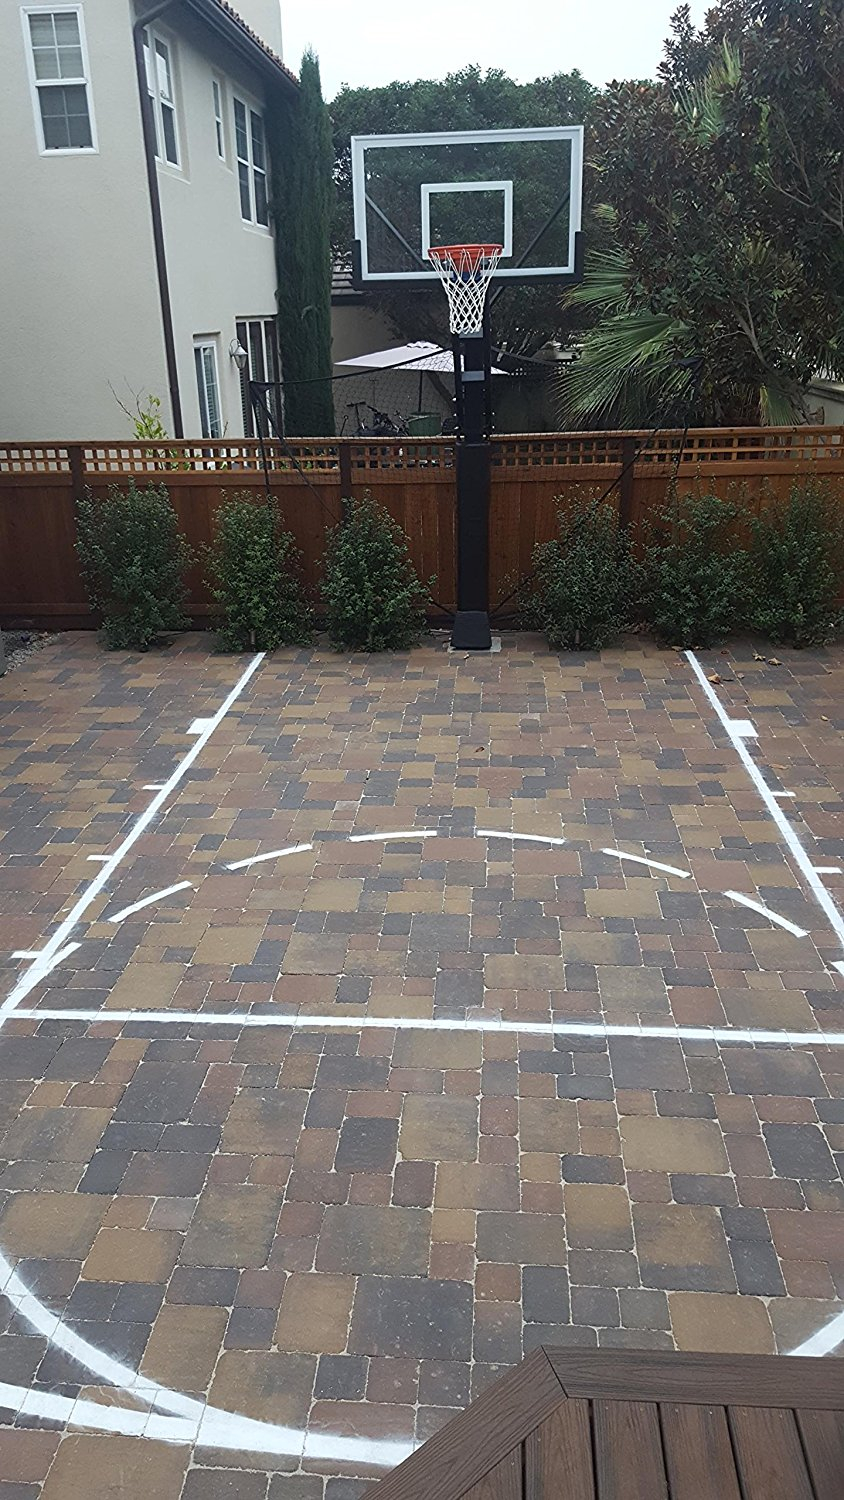 What To Buy To Make Your Own Basketball Court With Stencils Layouts regarding 12 Smart Designs of How to Improve Backyard Basketball Court Ideas